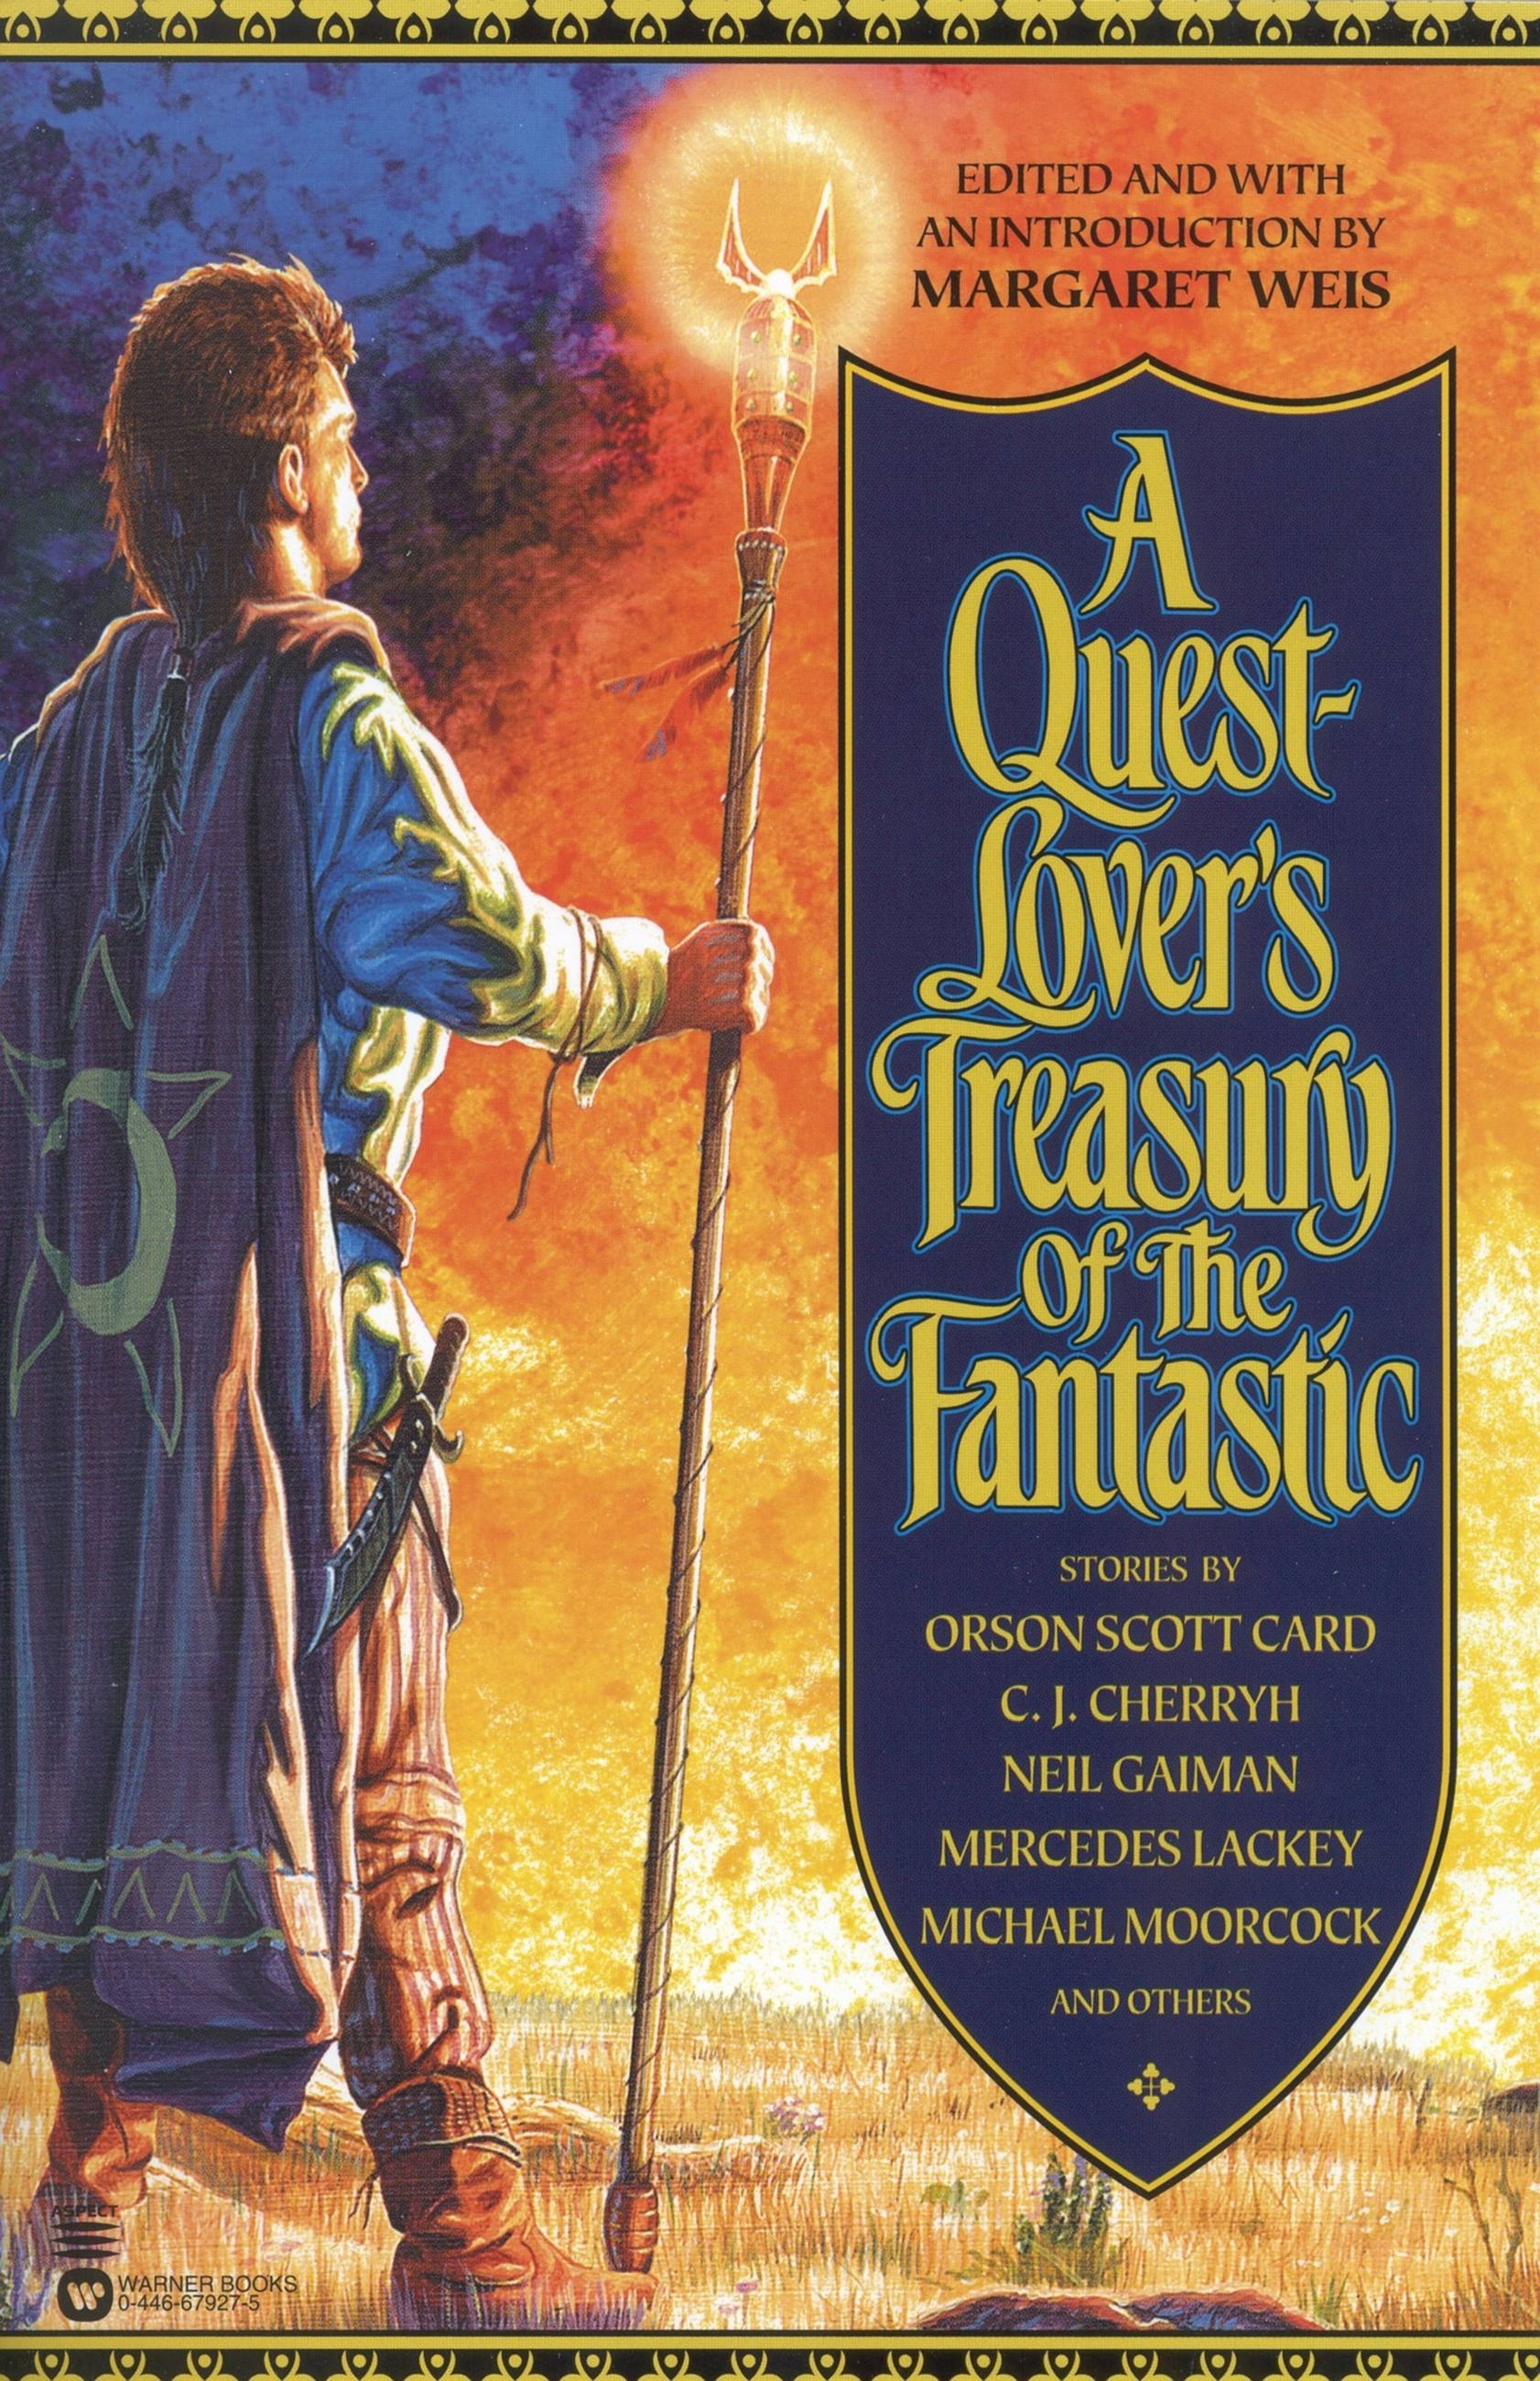 A Quest-Lover's Treasury of the Fantastic